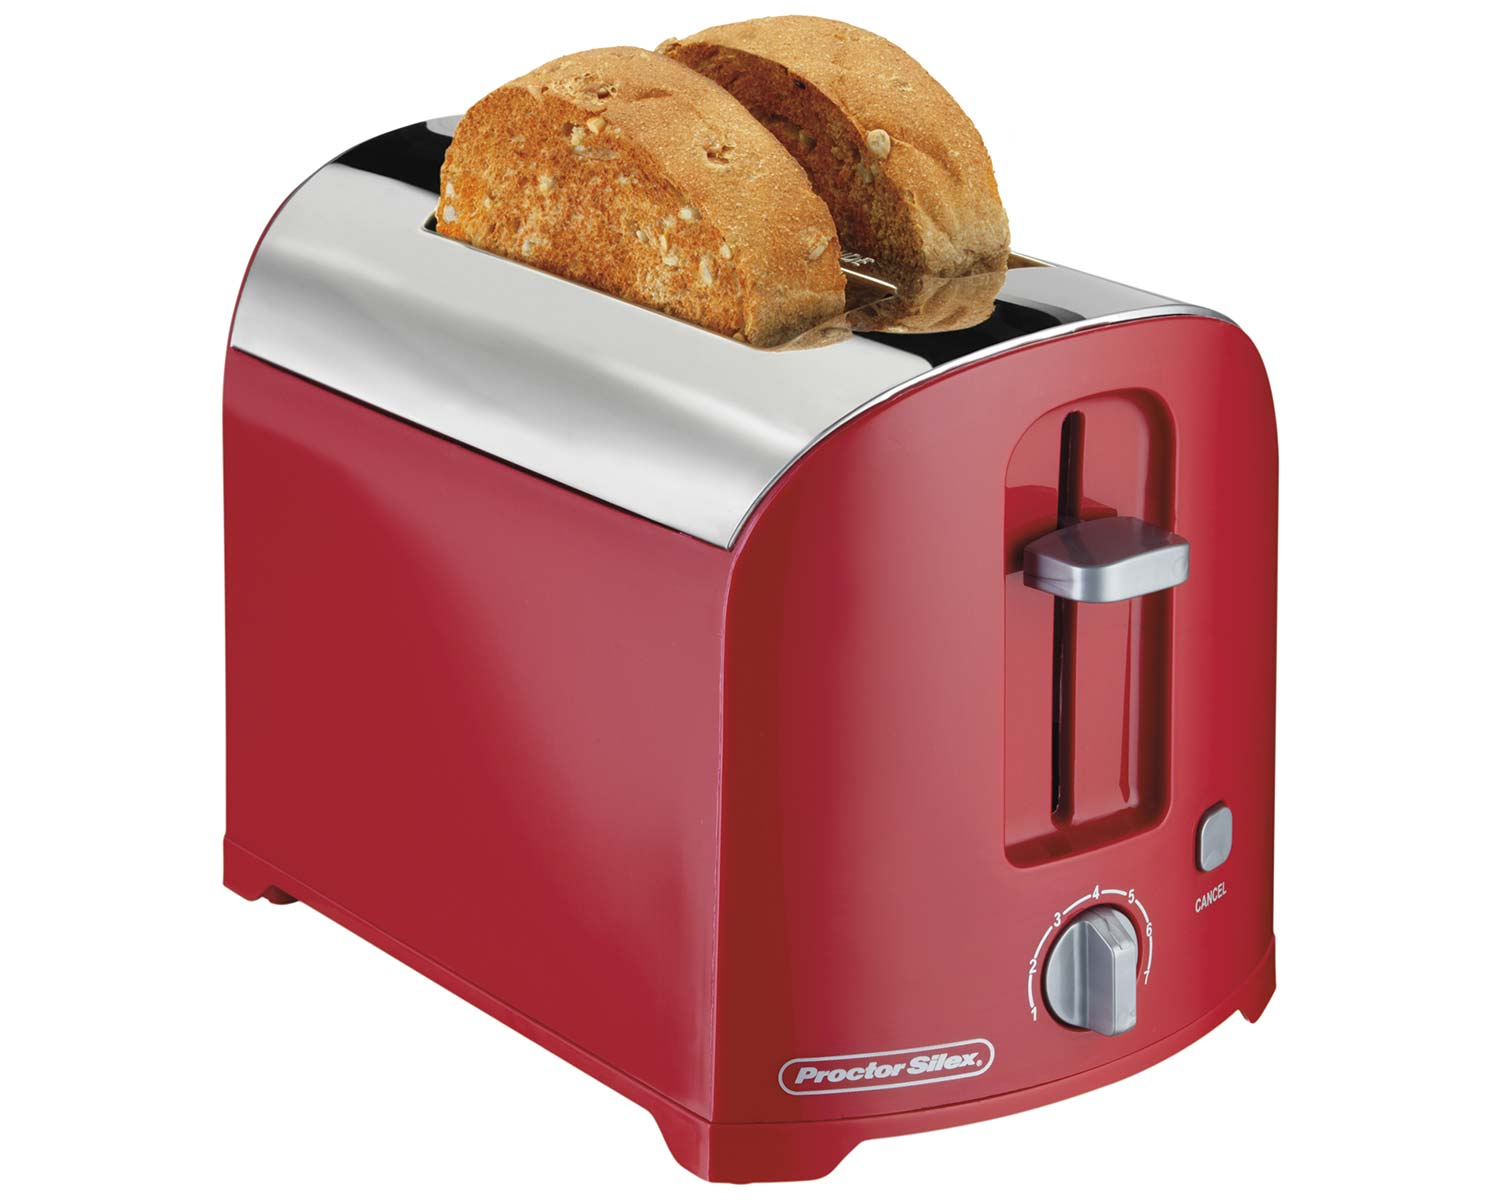 2 Slice Toaster (red)-22642